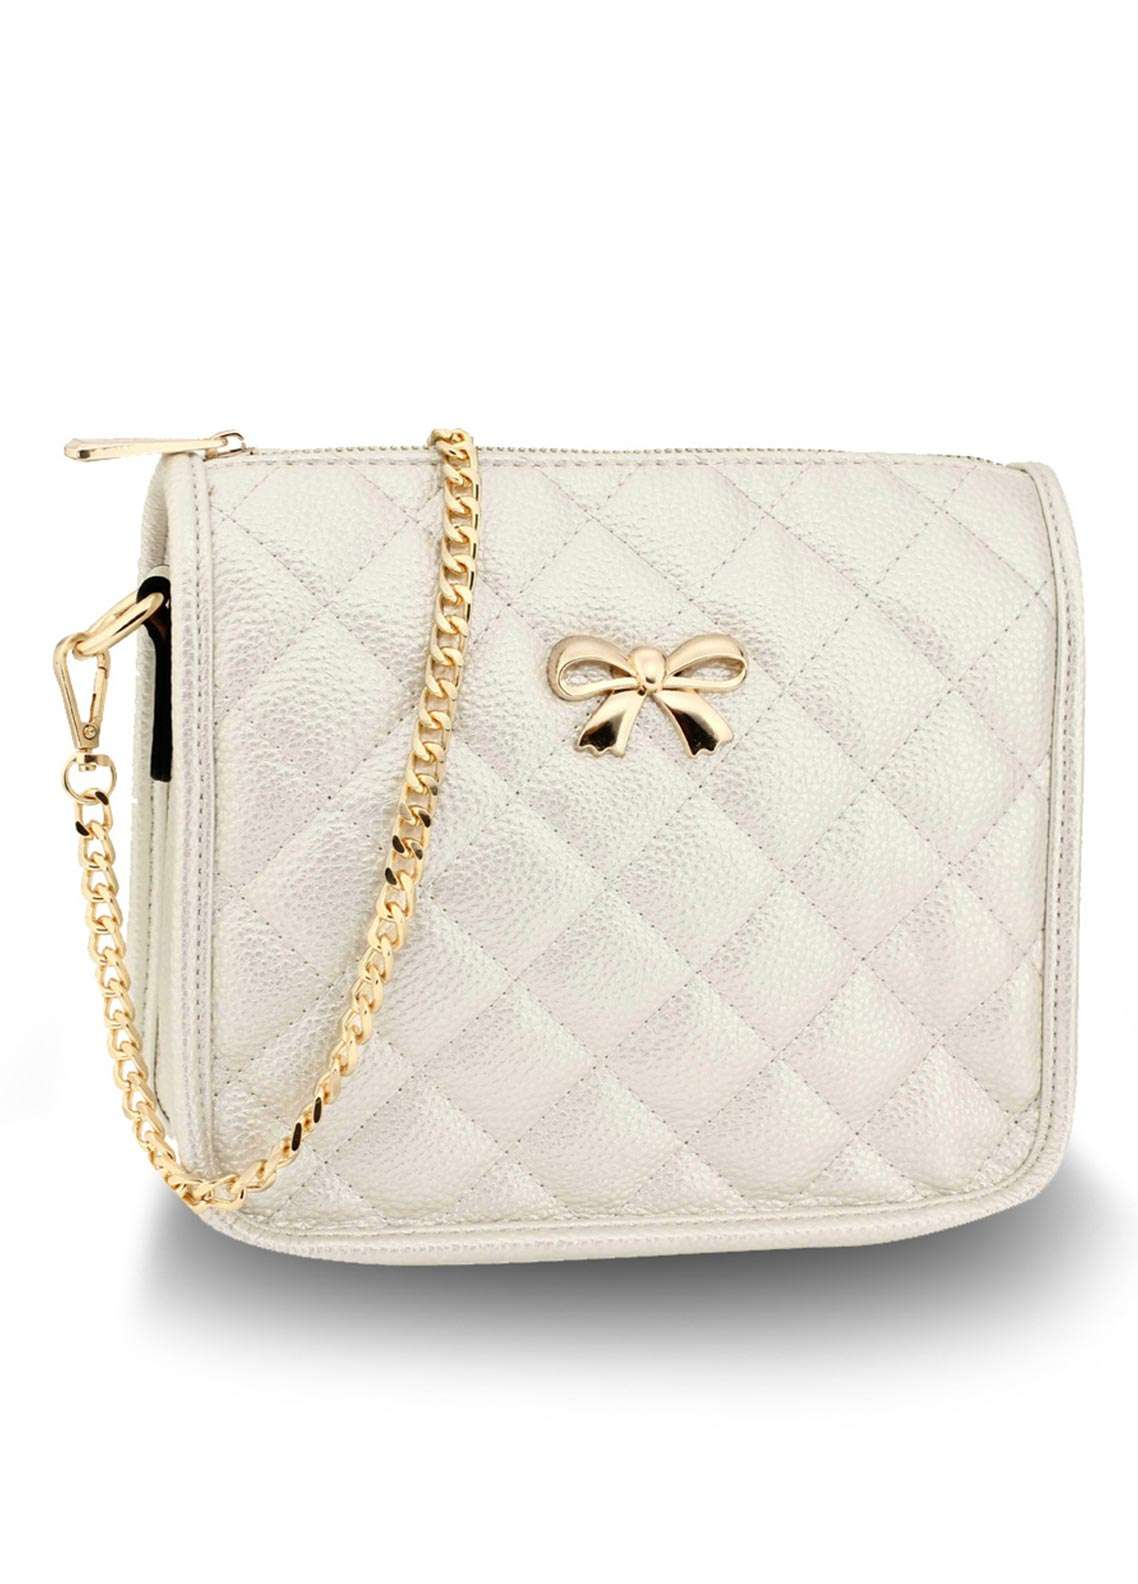 Anna Grace London Faux Leather Crossbody  Bags  for Women  Ivory with Quilted Texture